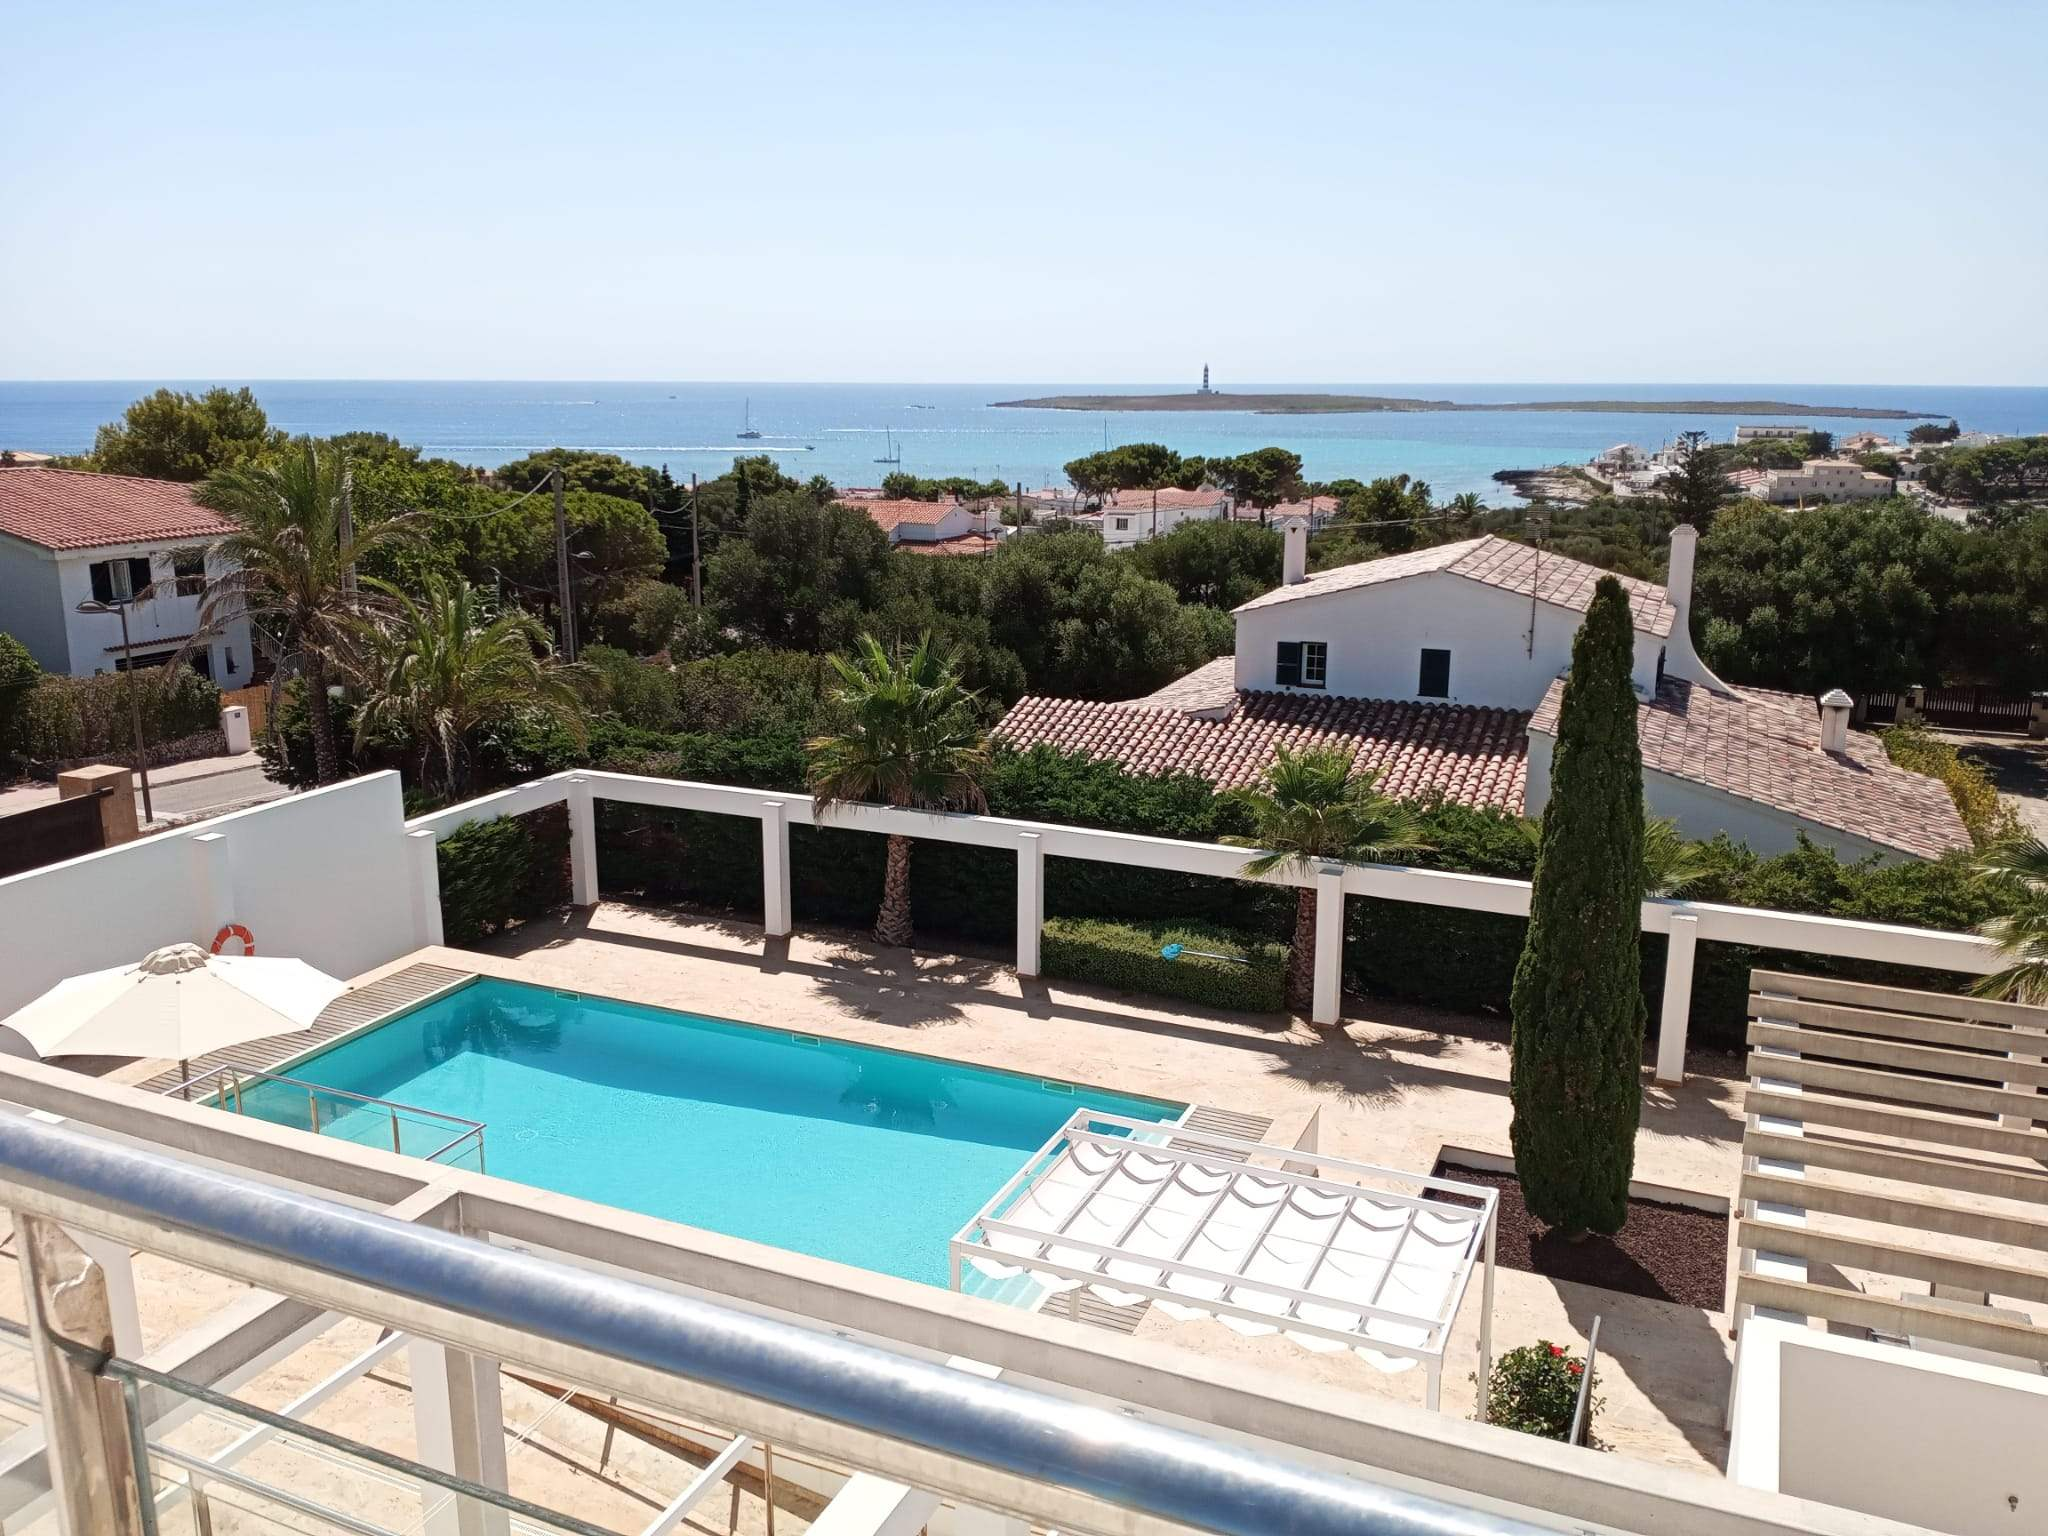 Casa Pitiusa, 5 Bedroom rate, 5 bedroom villa in Mahon, San Luis & South East, Menorca Photo #10